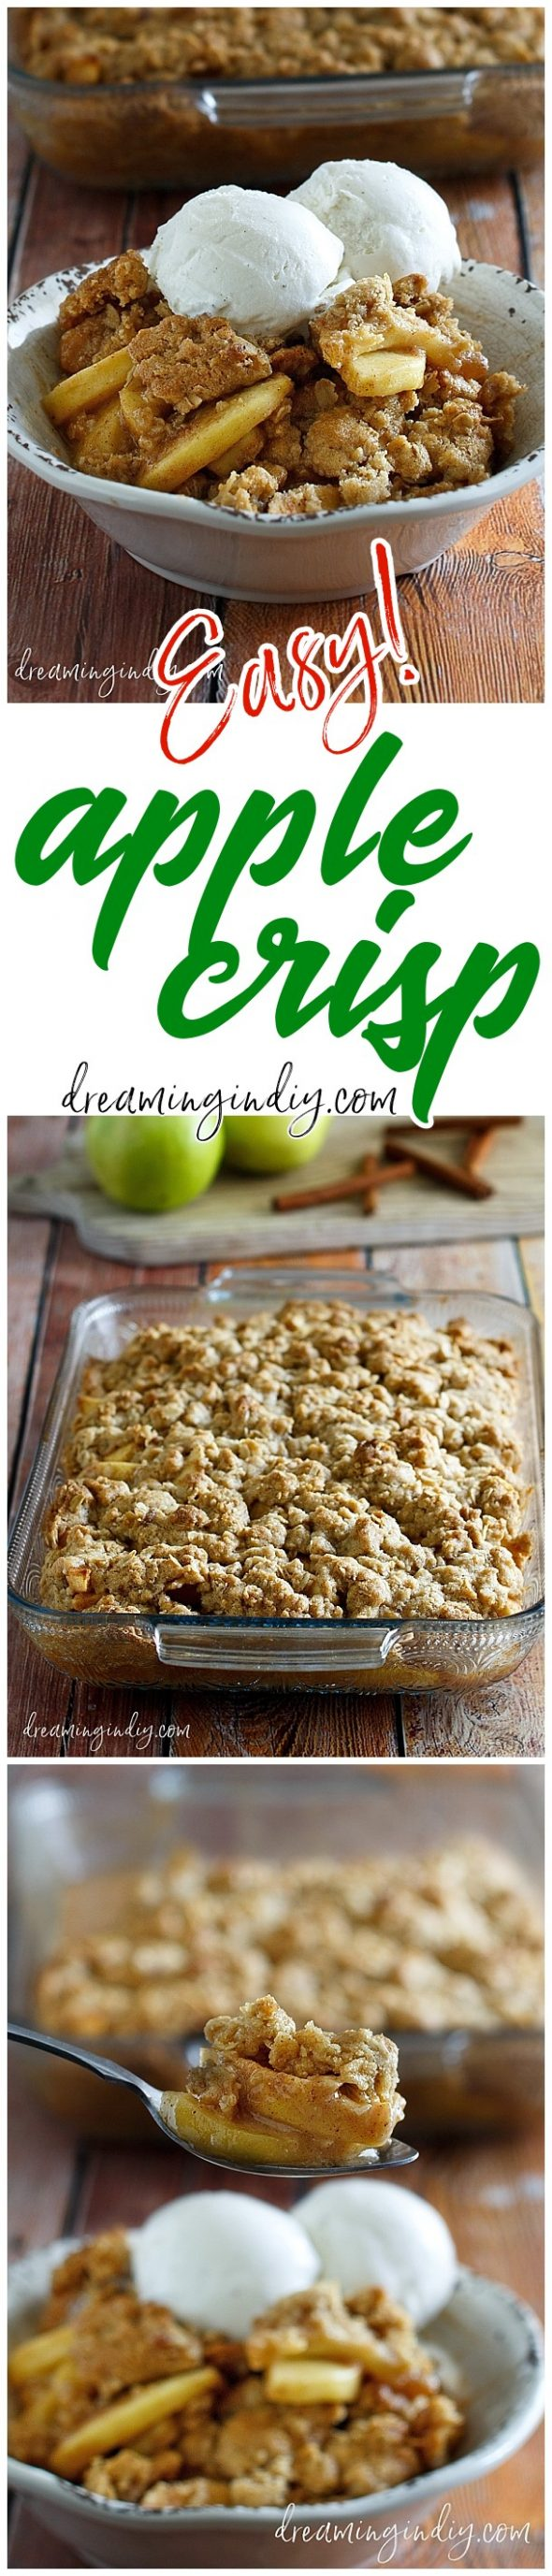 The Best Easy Apple Crisp Recipe - Classic Fall and Winter Dessert Family Favorite must for Thanksgiving and Christmas Dinner parties - Dreaming in DIY #applecrisp #falldessert #applerecipes #crisps